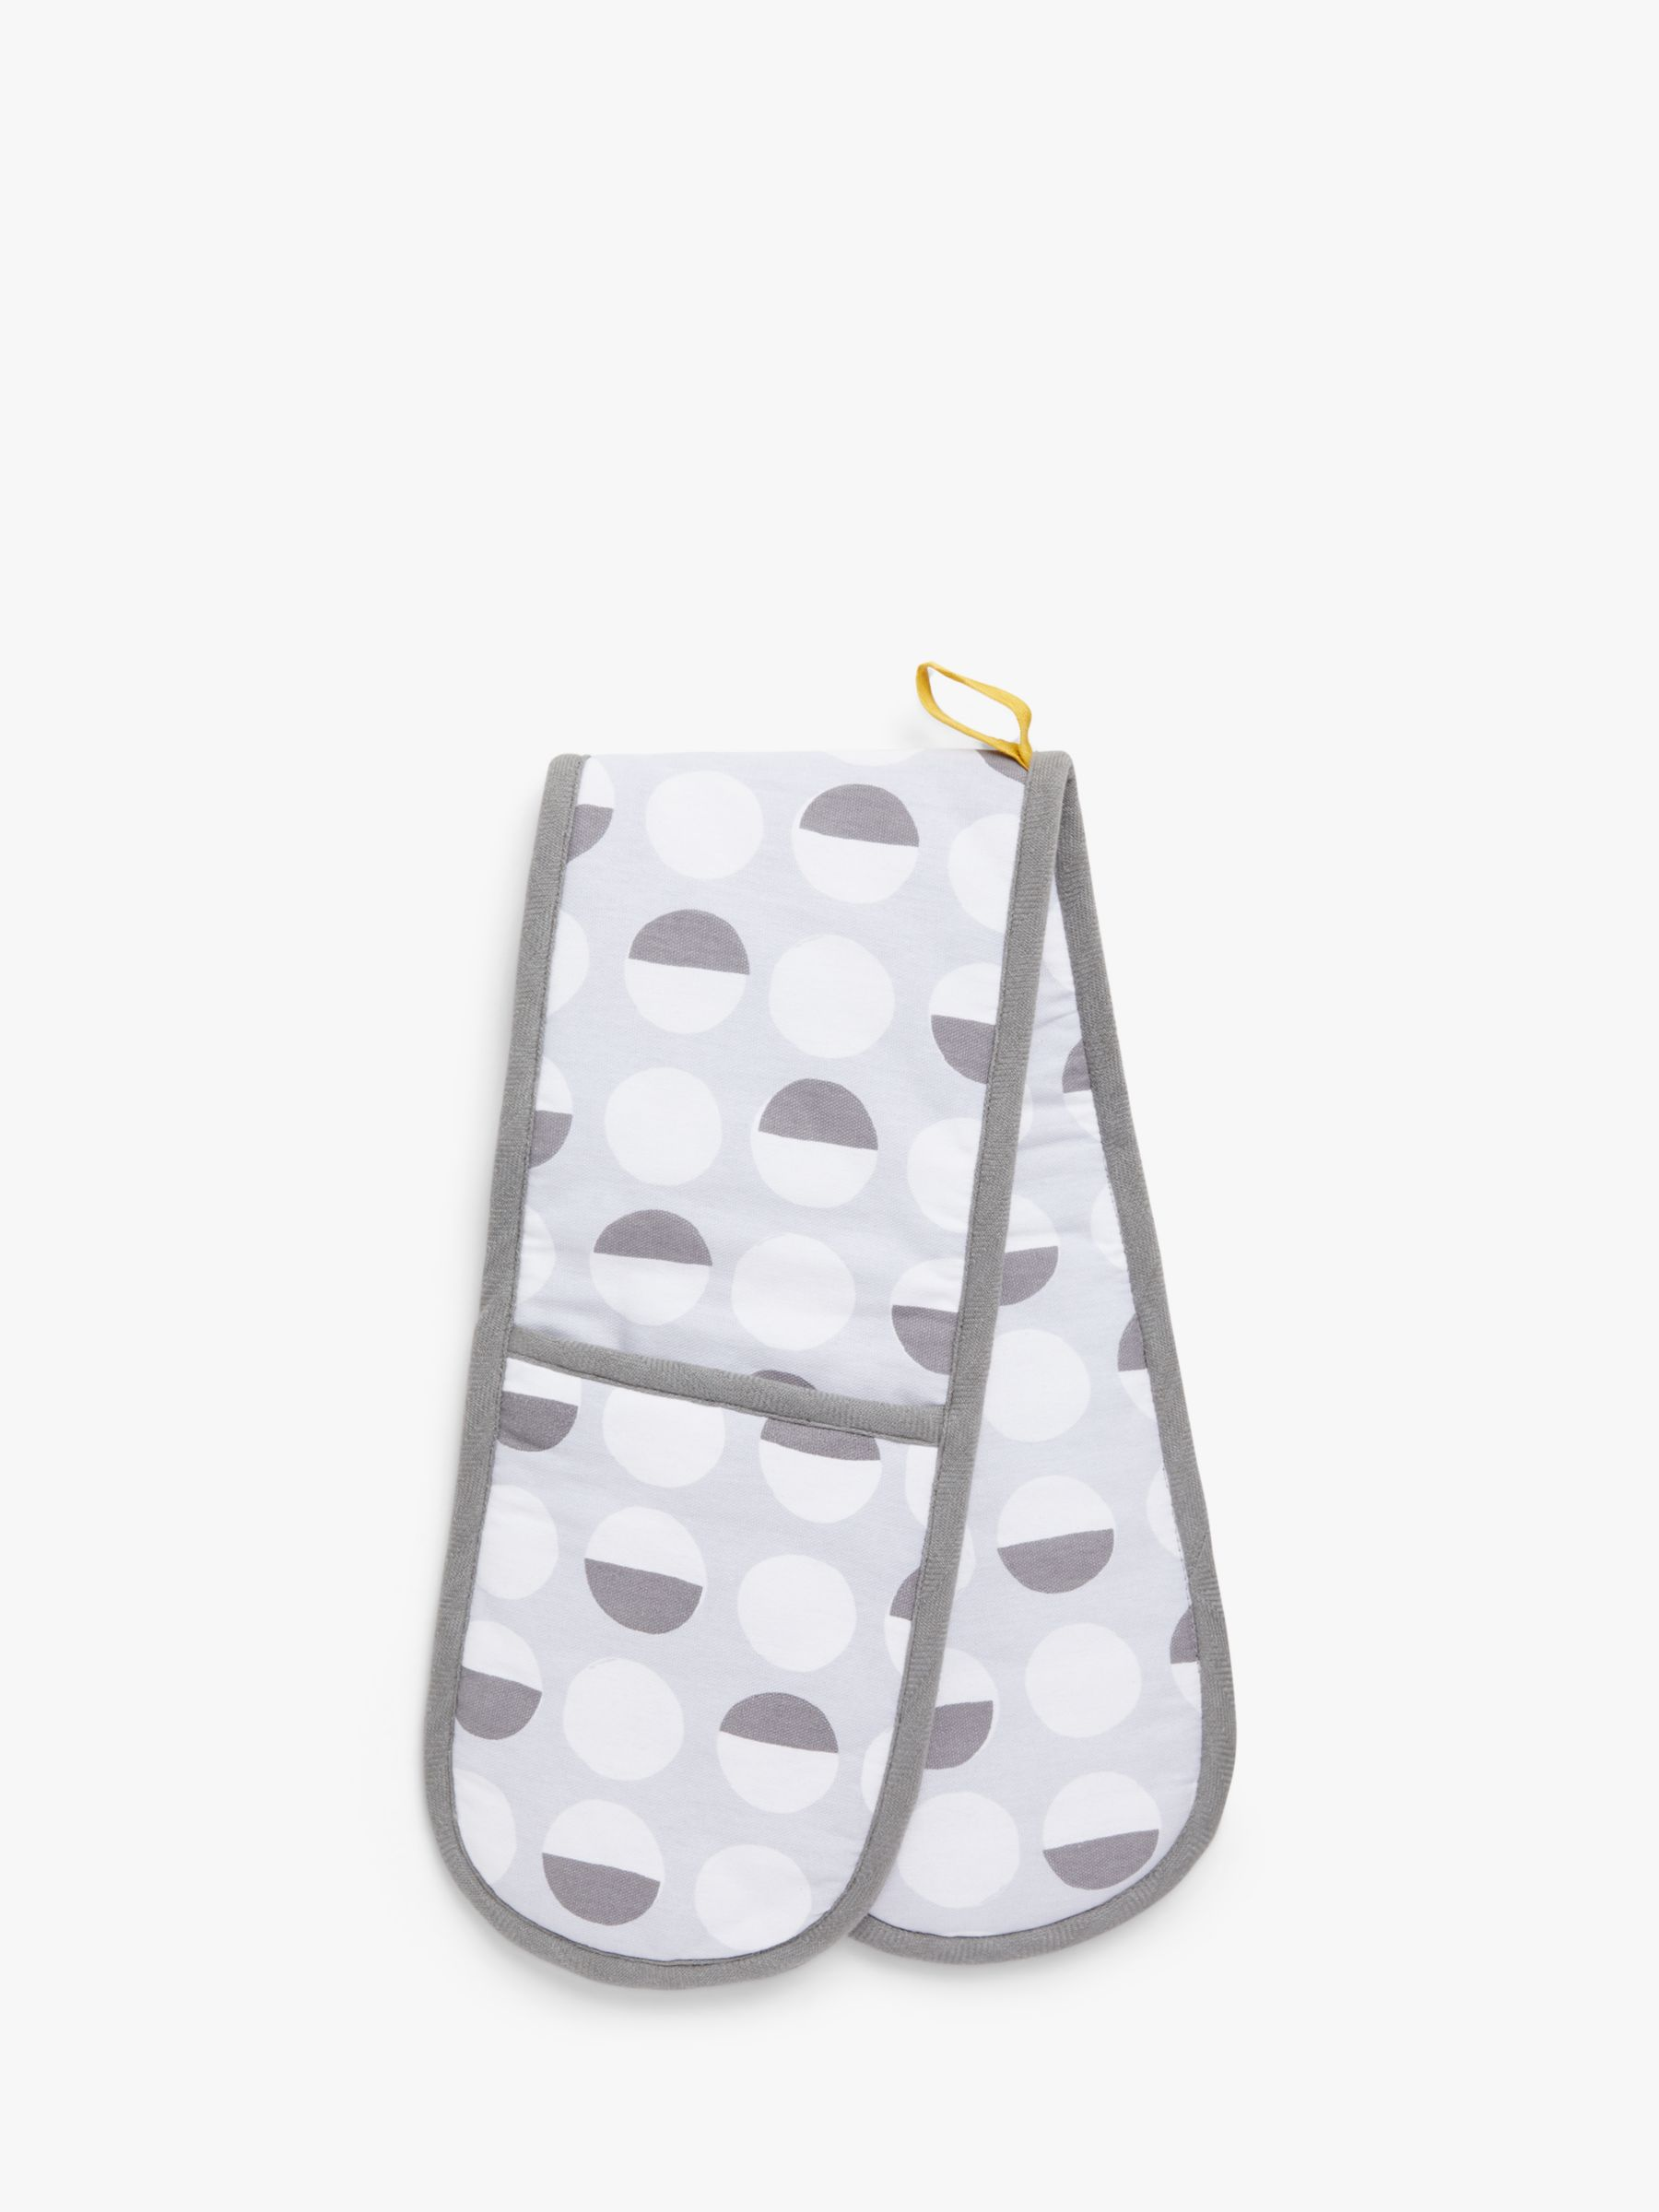 ANYDAY John Lewis & Partners Simple Spot Print Double Oven Glove, Grey